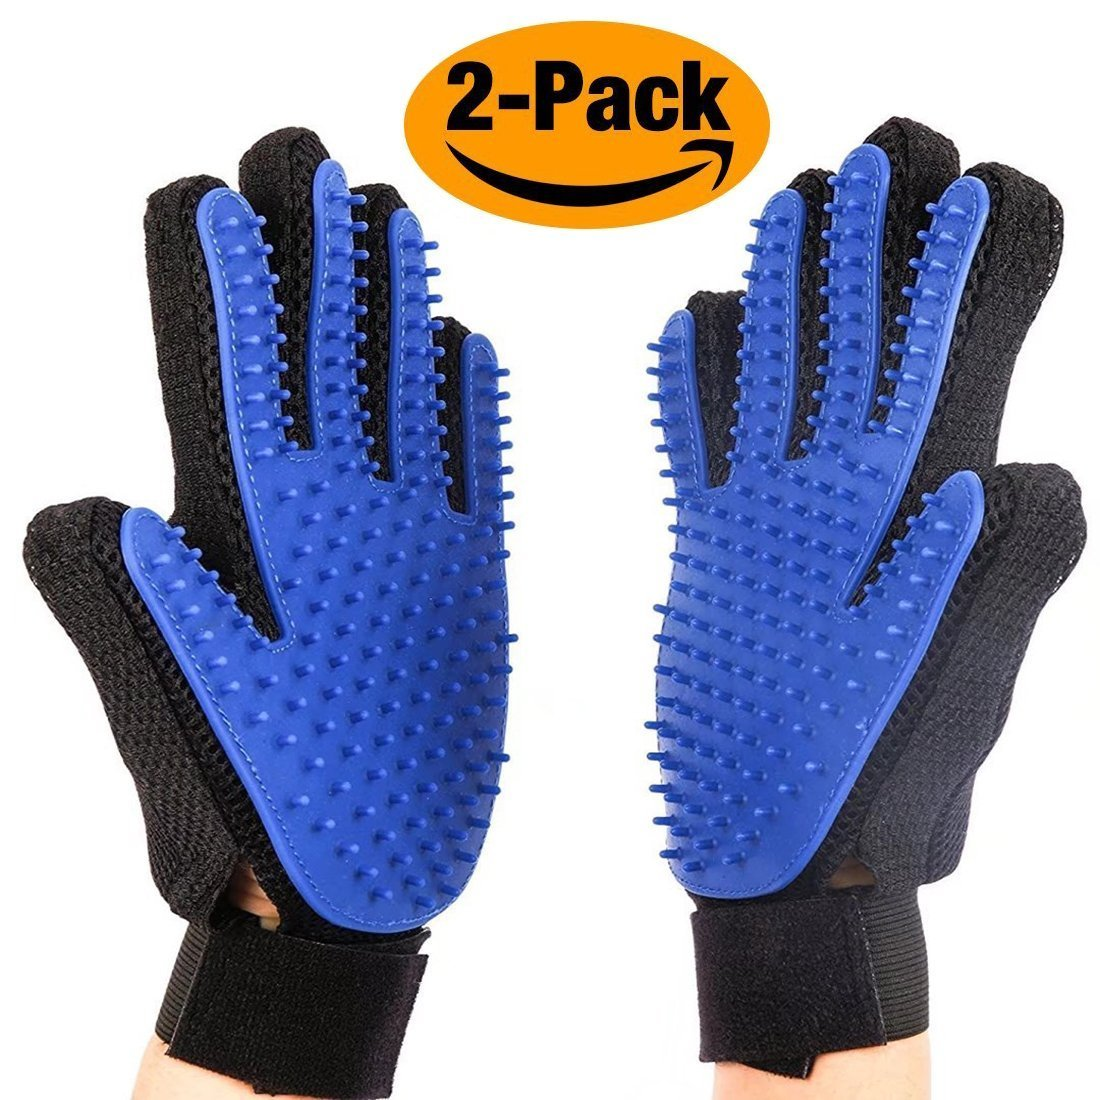 BuySevenSide Pet Grooming Glove - Gentle Deshedding Brush Glove - Efficient Pet Hair Remover Mitt with Enhanced Five Finger Design, Perfect for Dog, Cat and Horses with Long & Short Fur (blue)